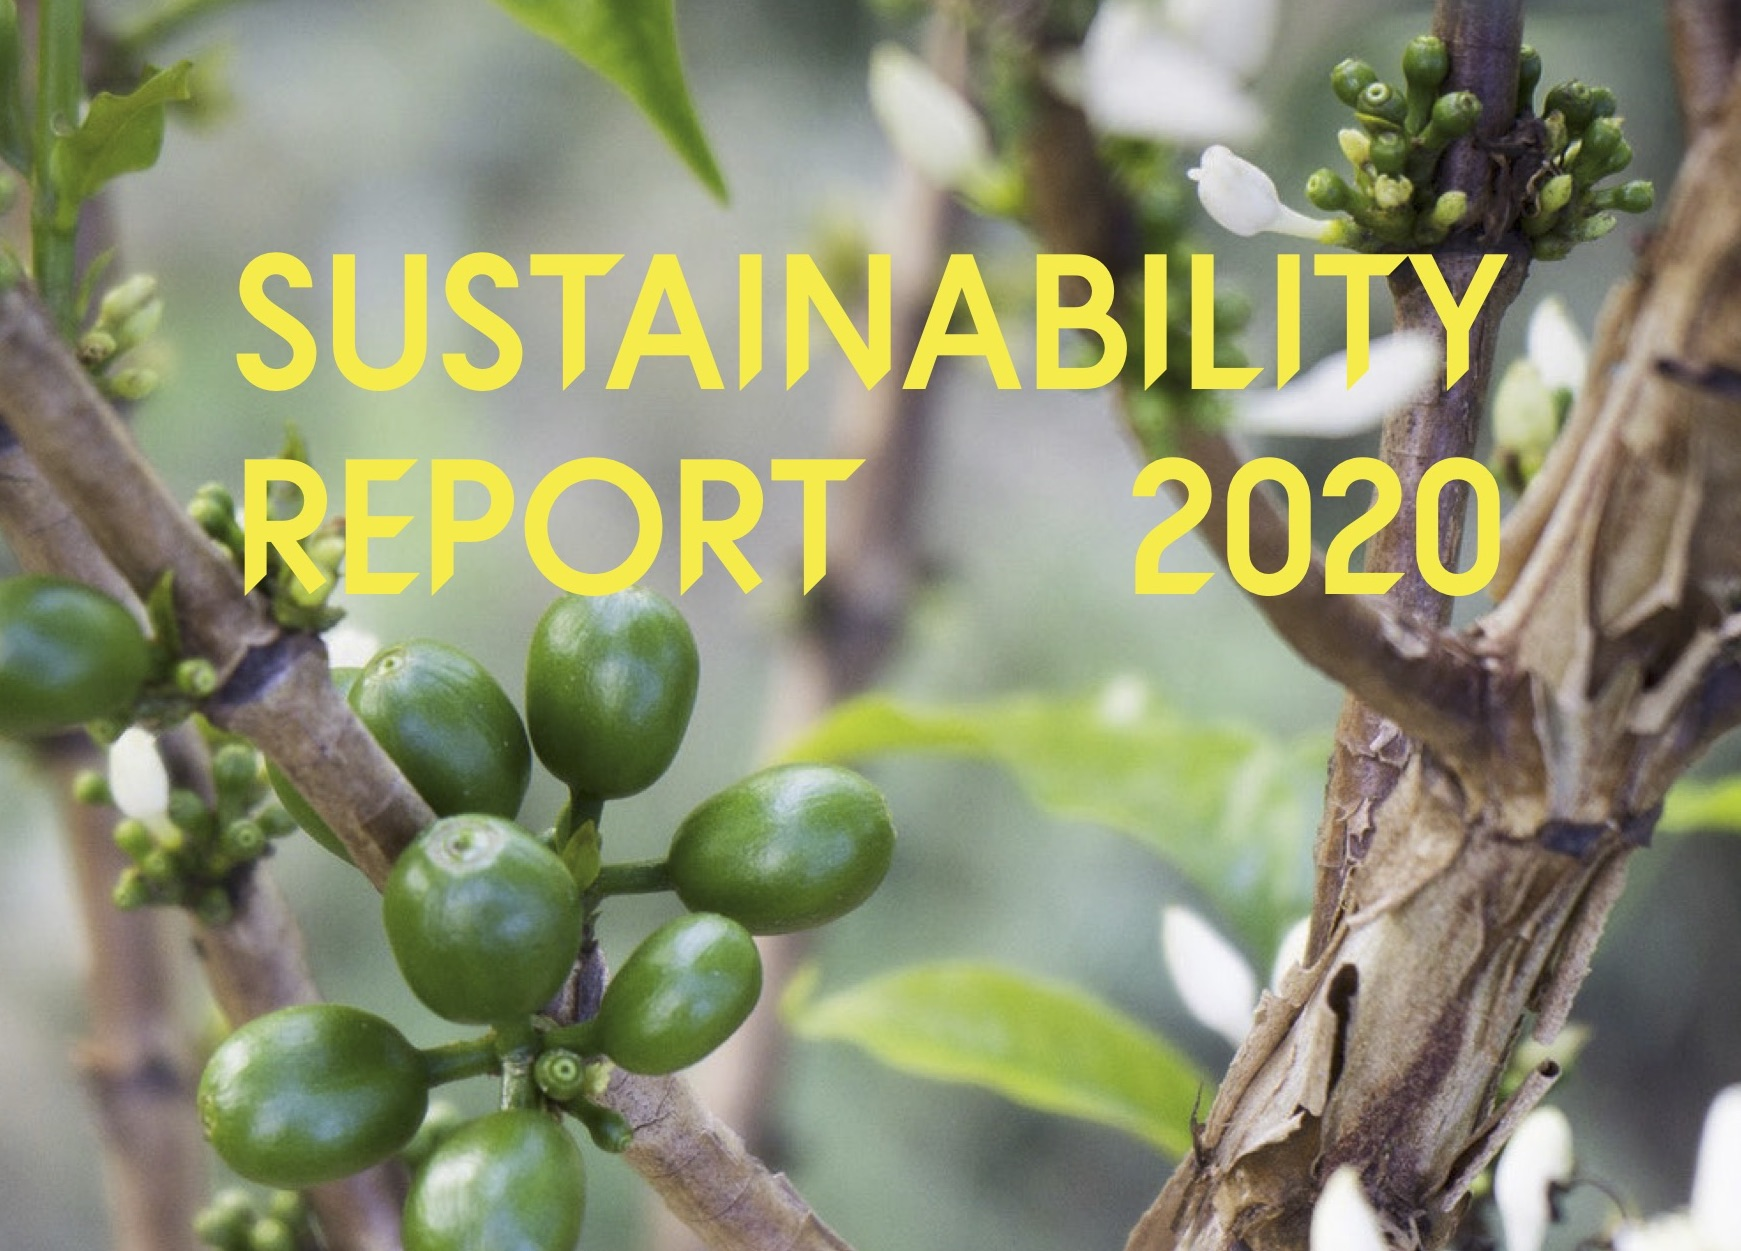 Read the 2020 Sustainability Report in link below